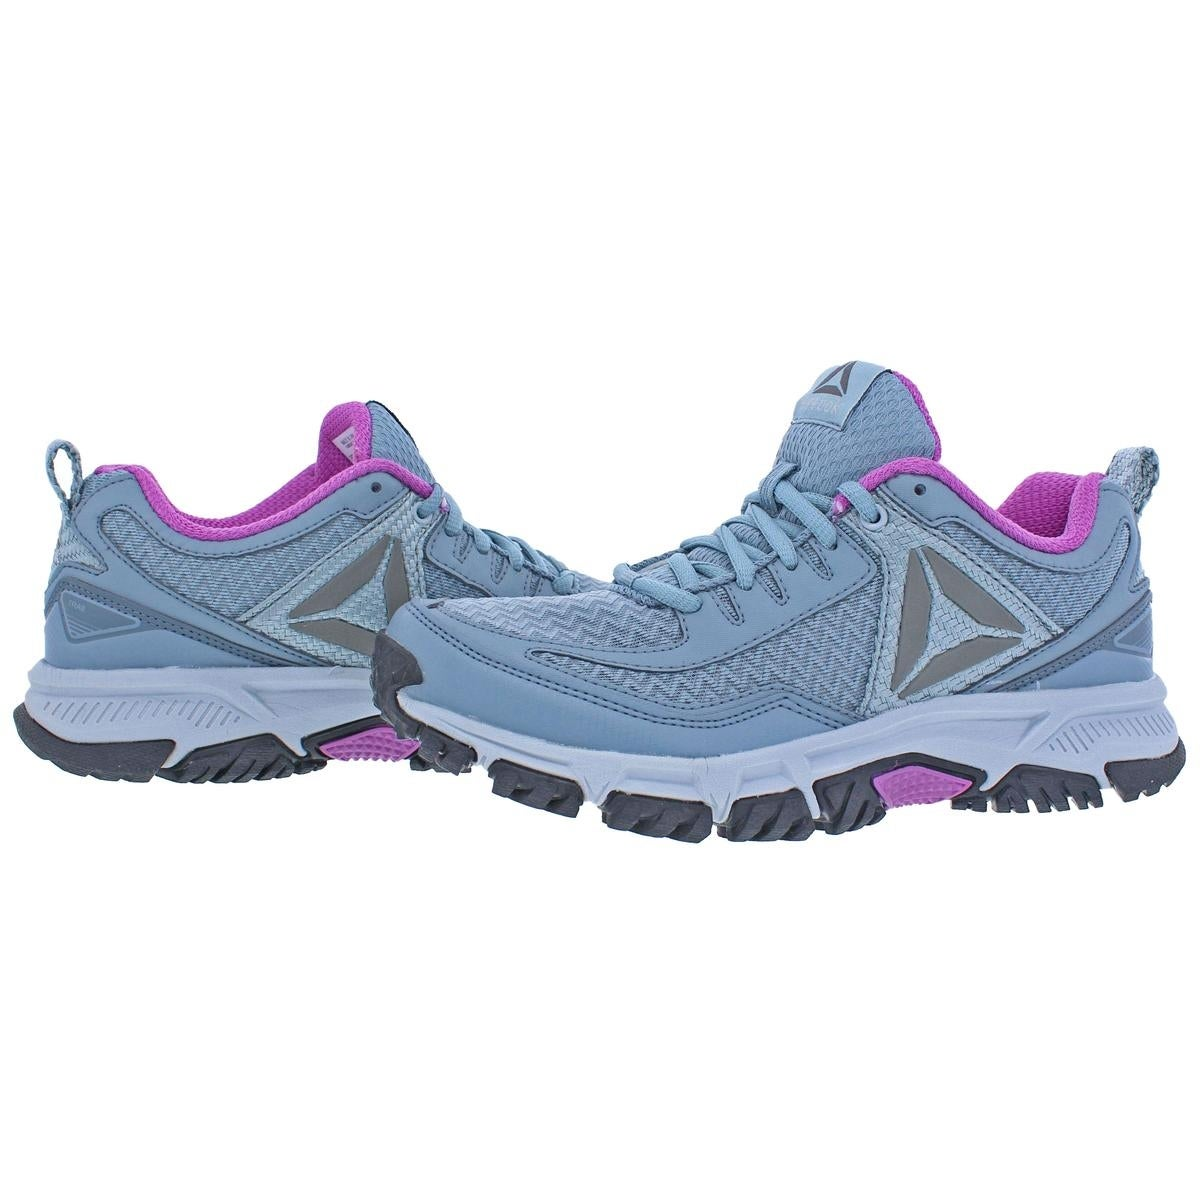 59d74c968a4 Shop Reebok Womens Ridgerider Trail 2.0 Trail Running Shoes EVA Trainer -  Free Shipping On Orders Over  45 - Overstock.com - 22681274